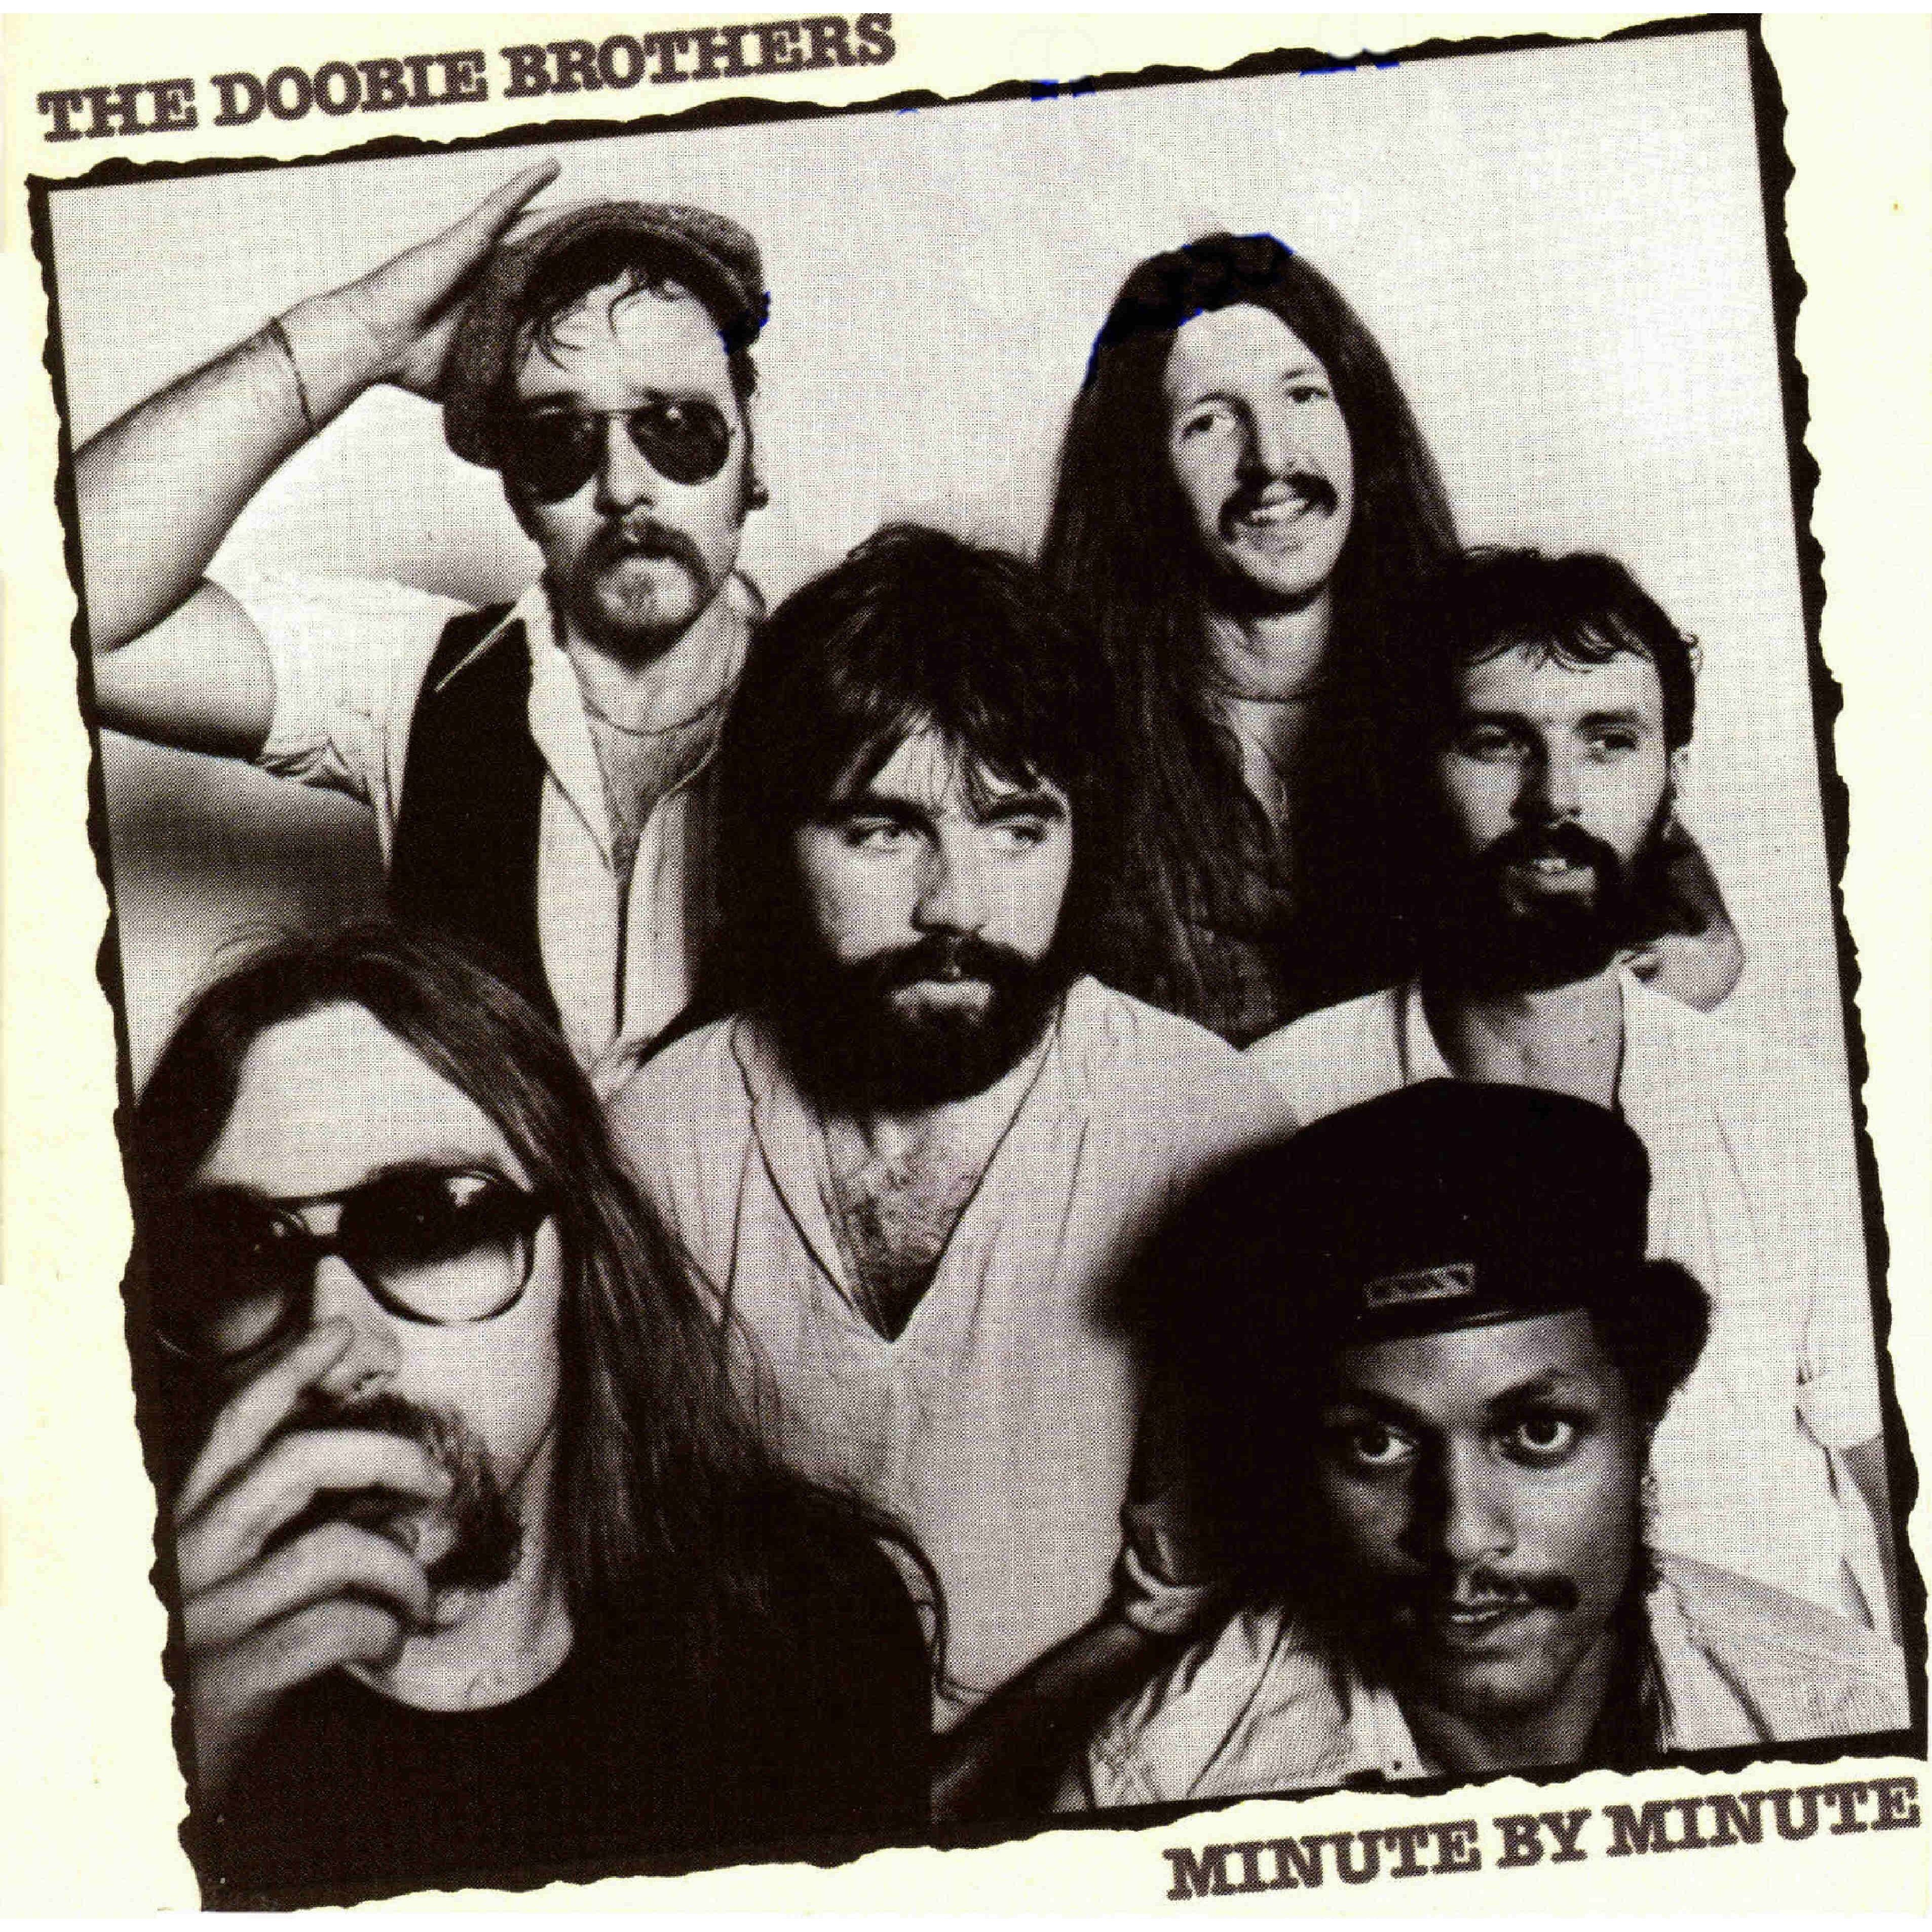 The Doobie Brothers - Minute By Minute (180 Gram Audiophile Vinyl)